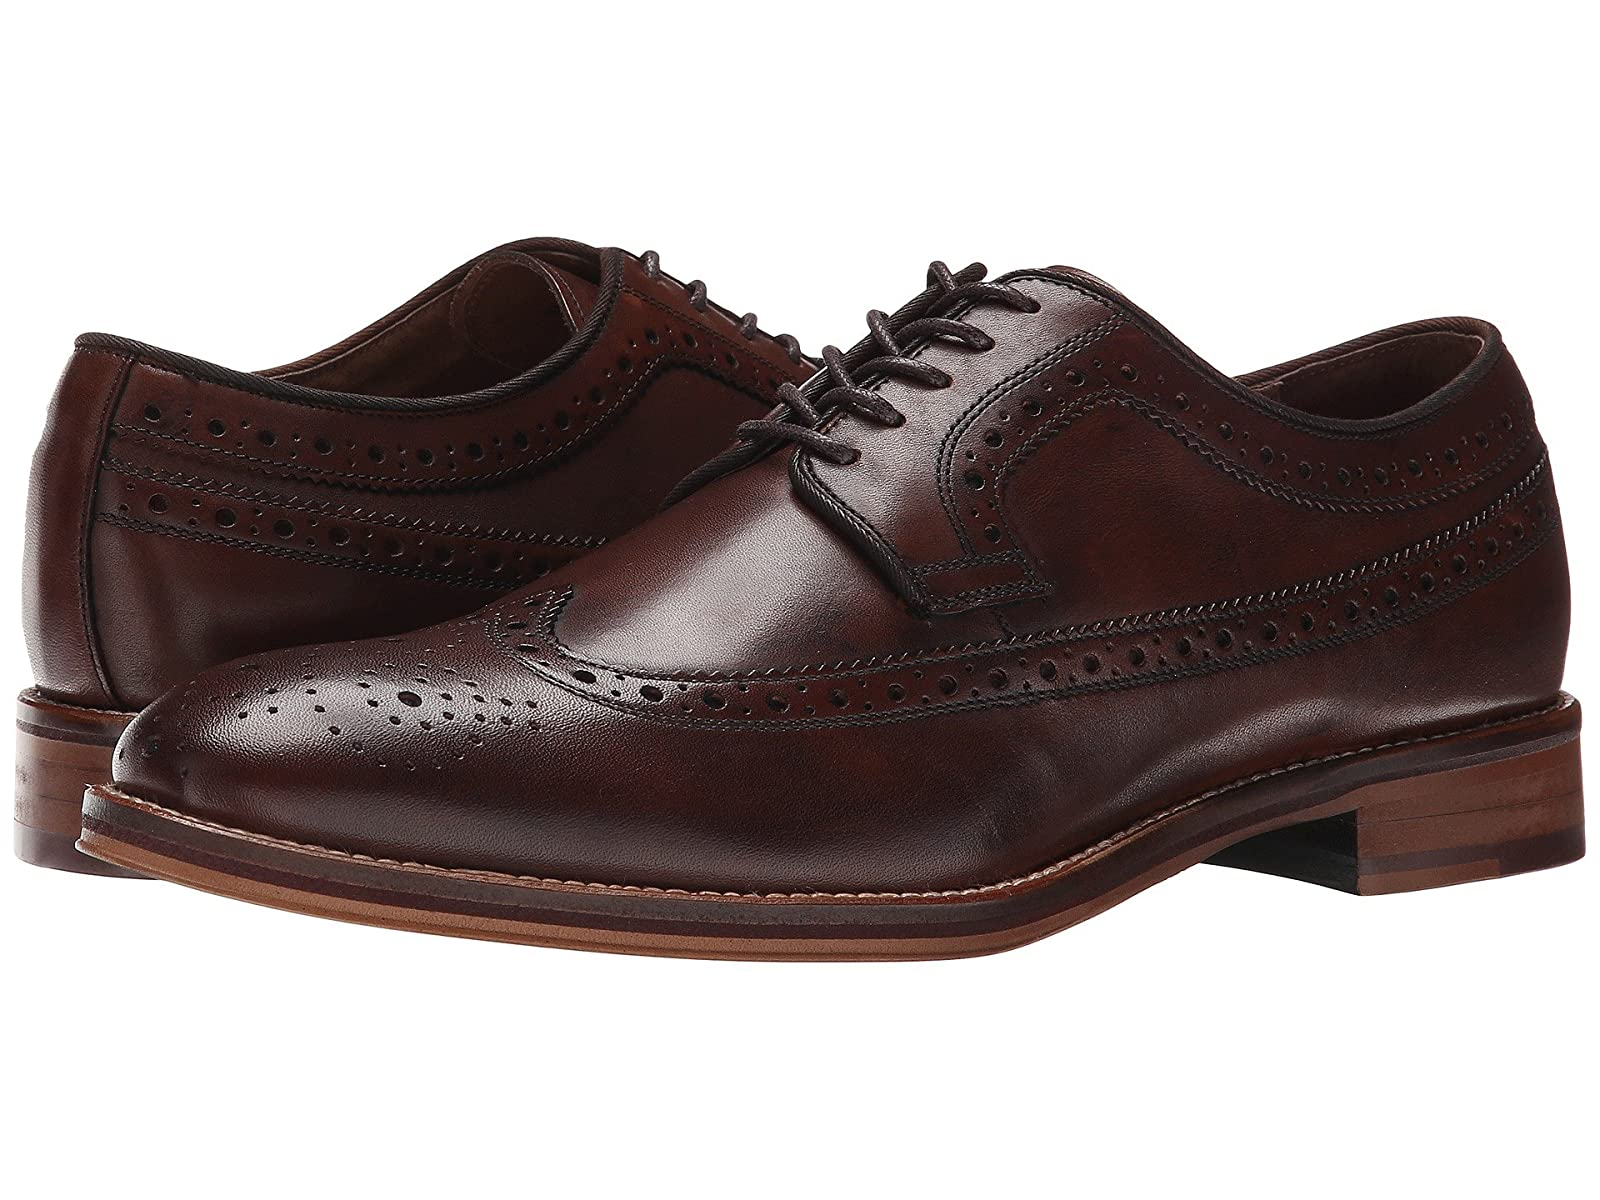 Johnston & Murphy Conard Causal Dress Wingtip OxfordAtmospheric grades have affordable shoes